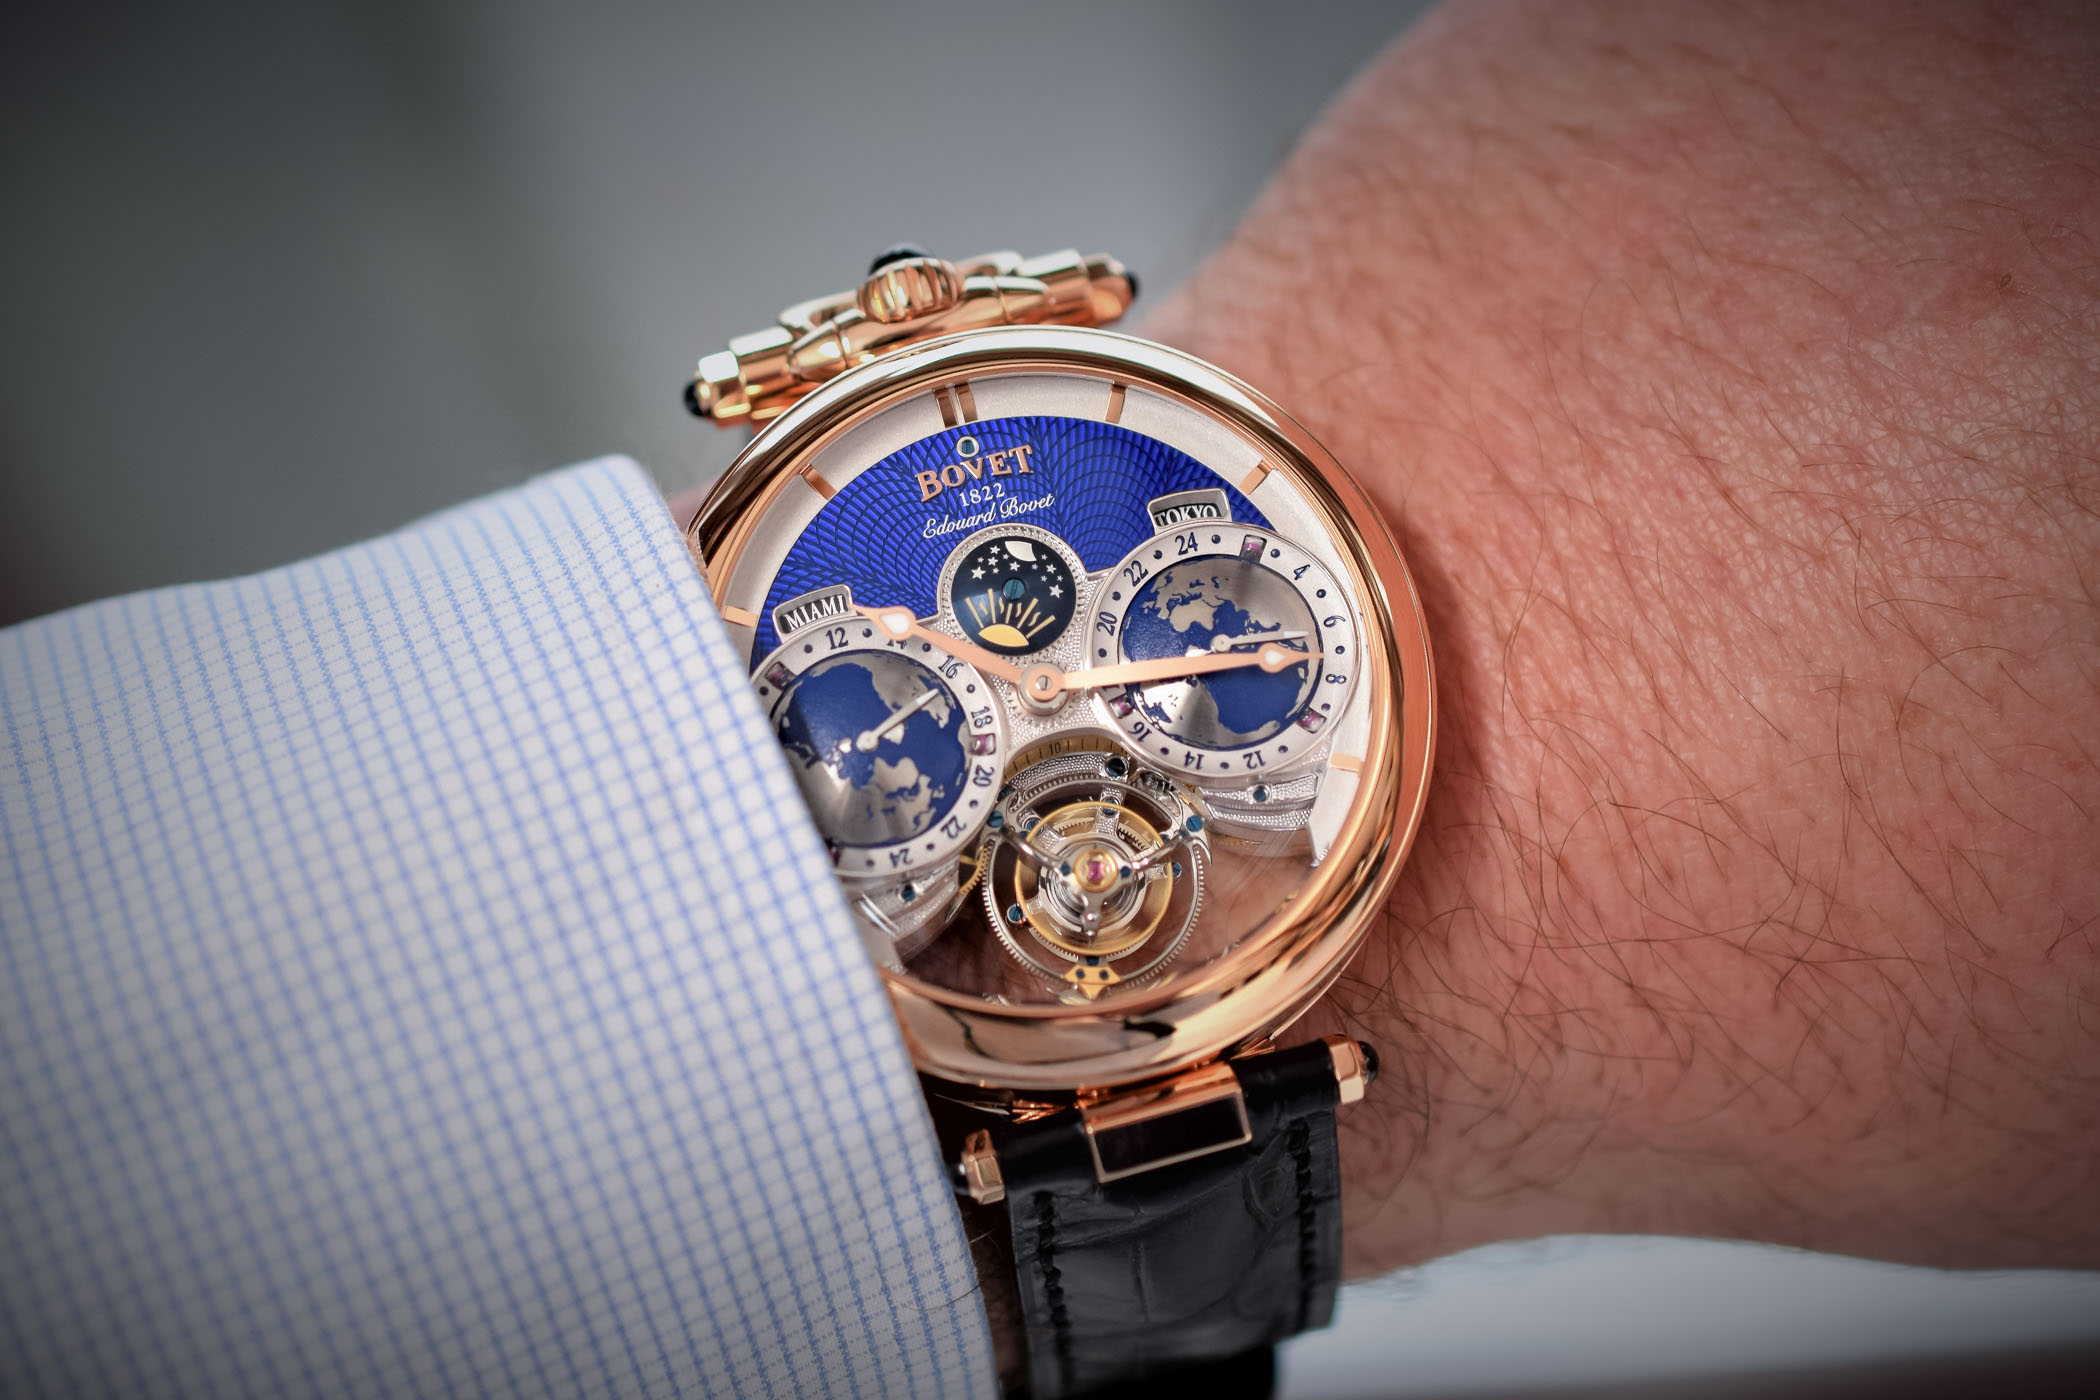 edouard sihh fleurier flying bovet watches tourbillon amadeo